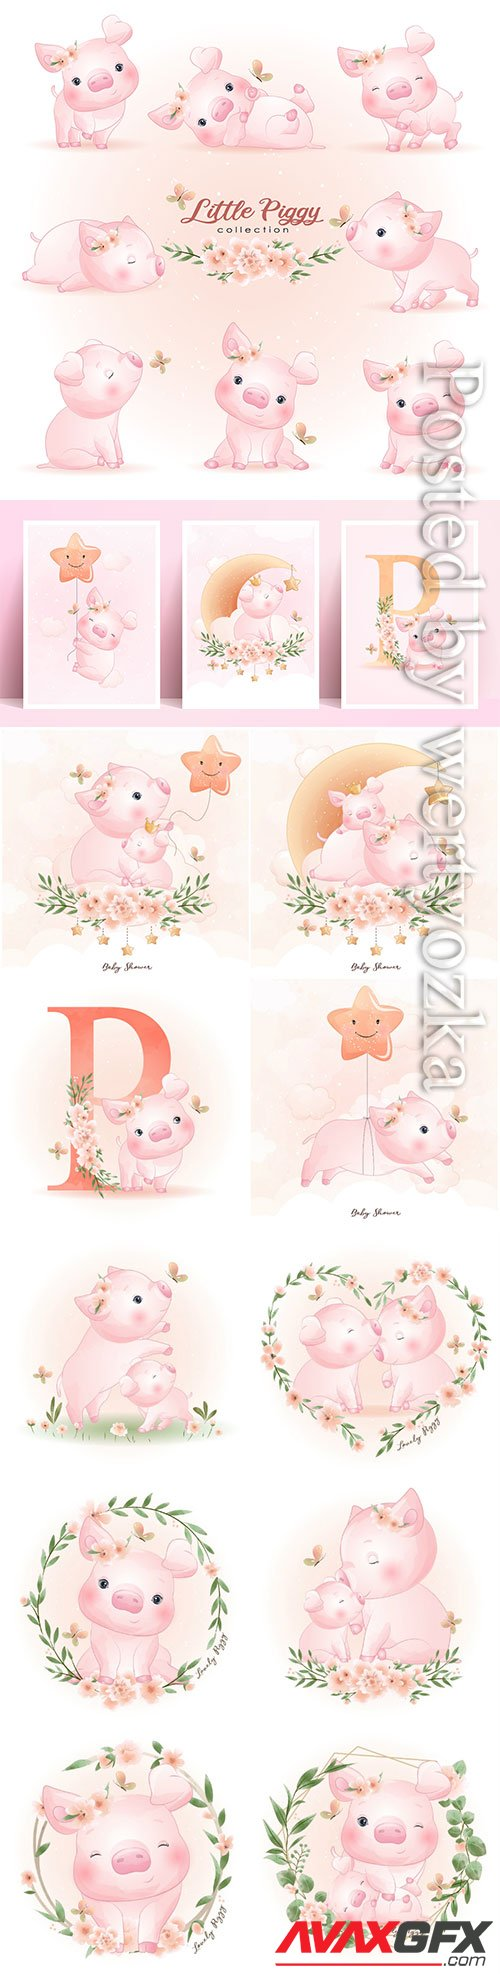 Cute doodle piggy poses with floral illustration premium vector